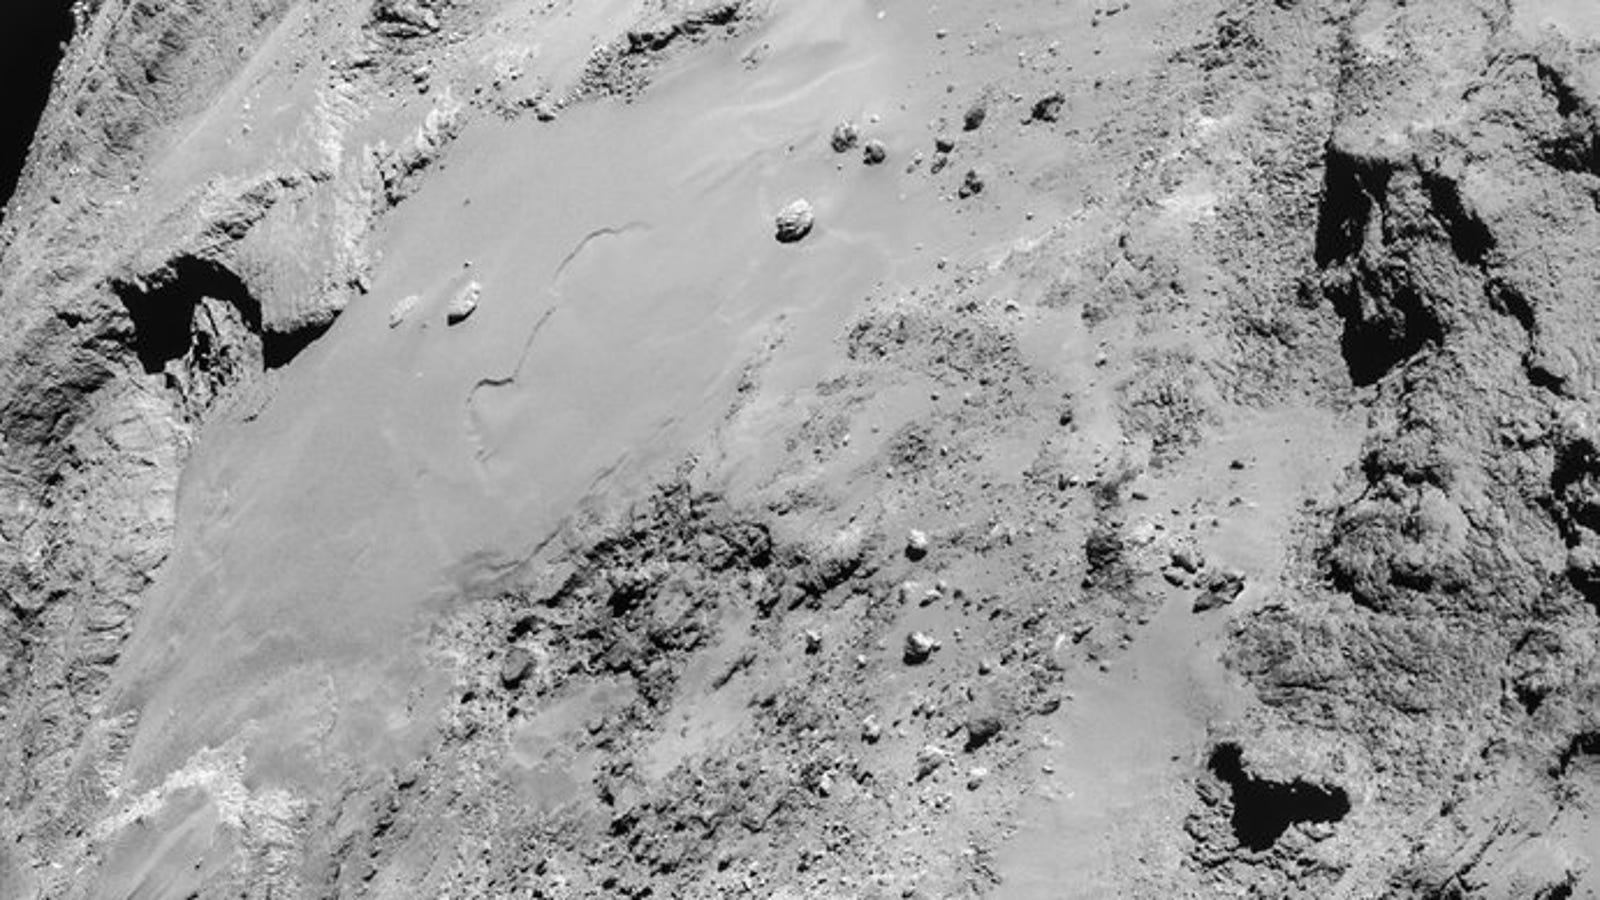 Stunning Close-Up Comet Photos From Rosetta's High-Speed Flyby